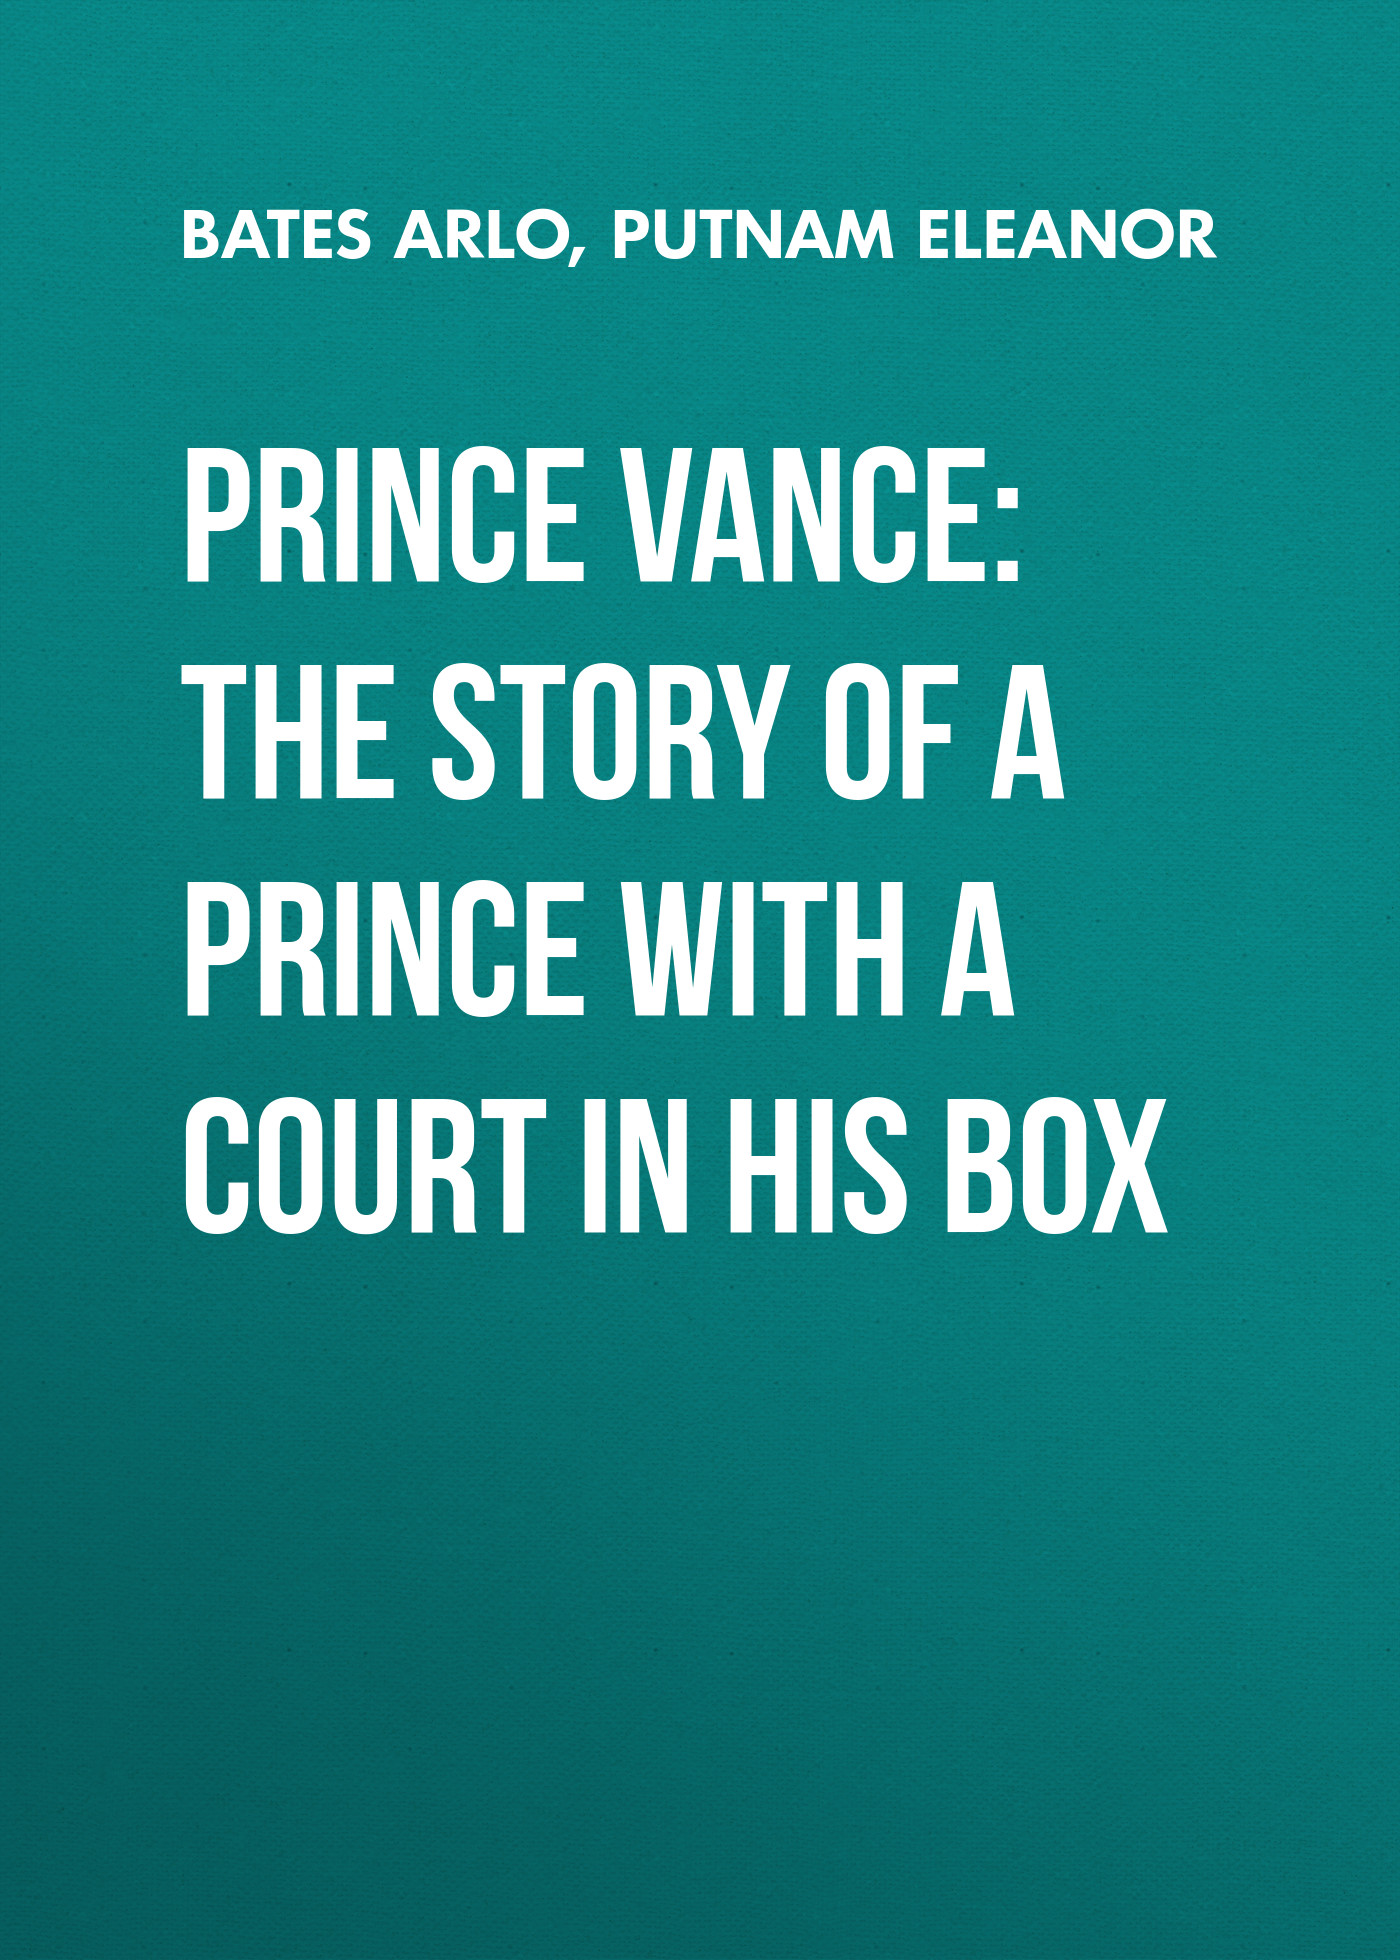 Putnam Eleanor Prince Vance: The Story of a Prince with a Court in His Box his story of re negotiation